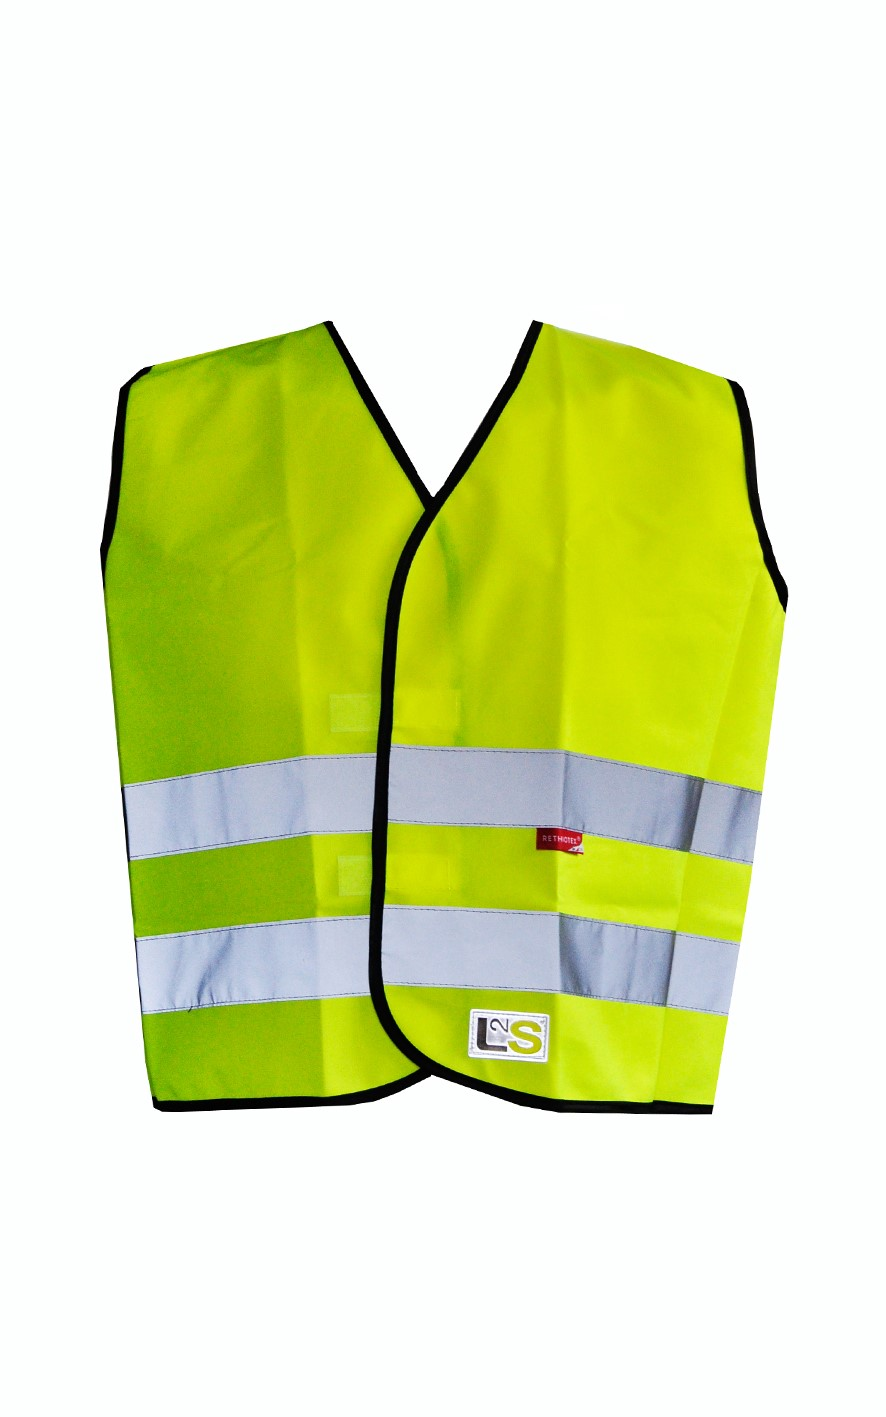 l2s visiokid gilet enfant sport s curit haute visibilit jaune fluo running cyclisme. Black Bedroom Furniture Sets. Home Design Ideas